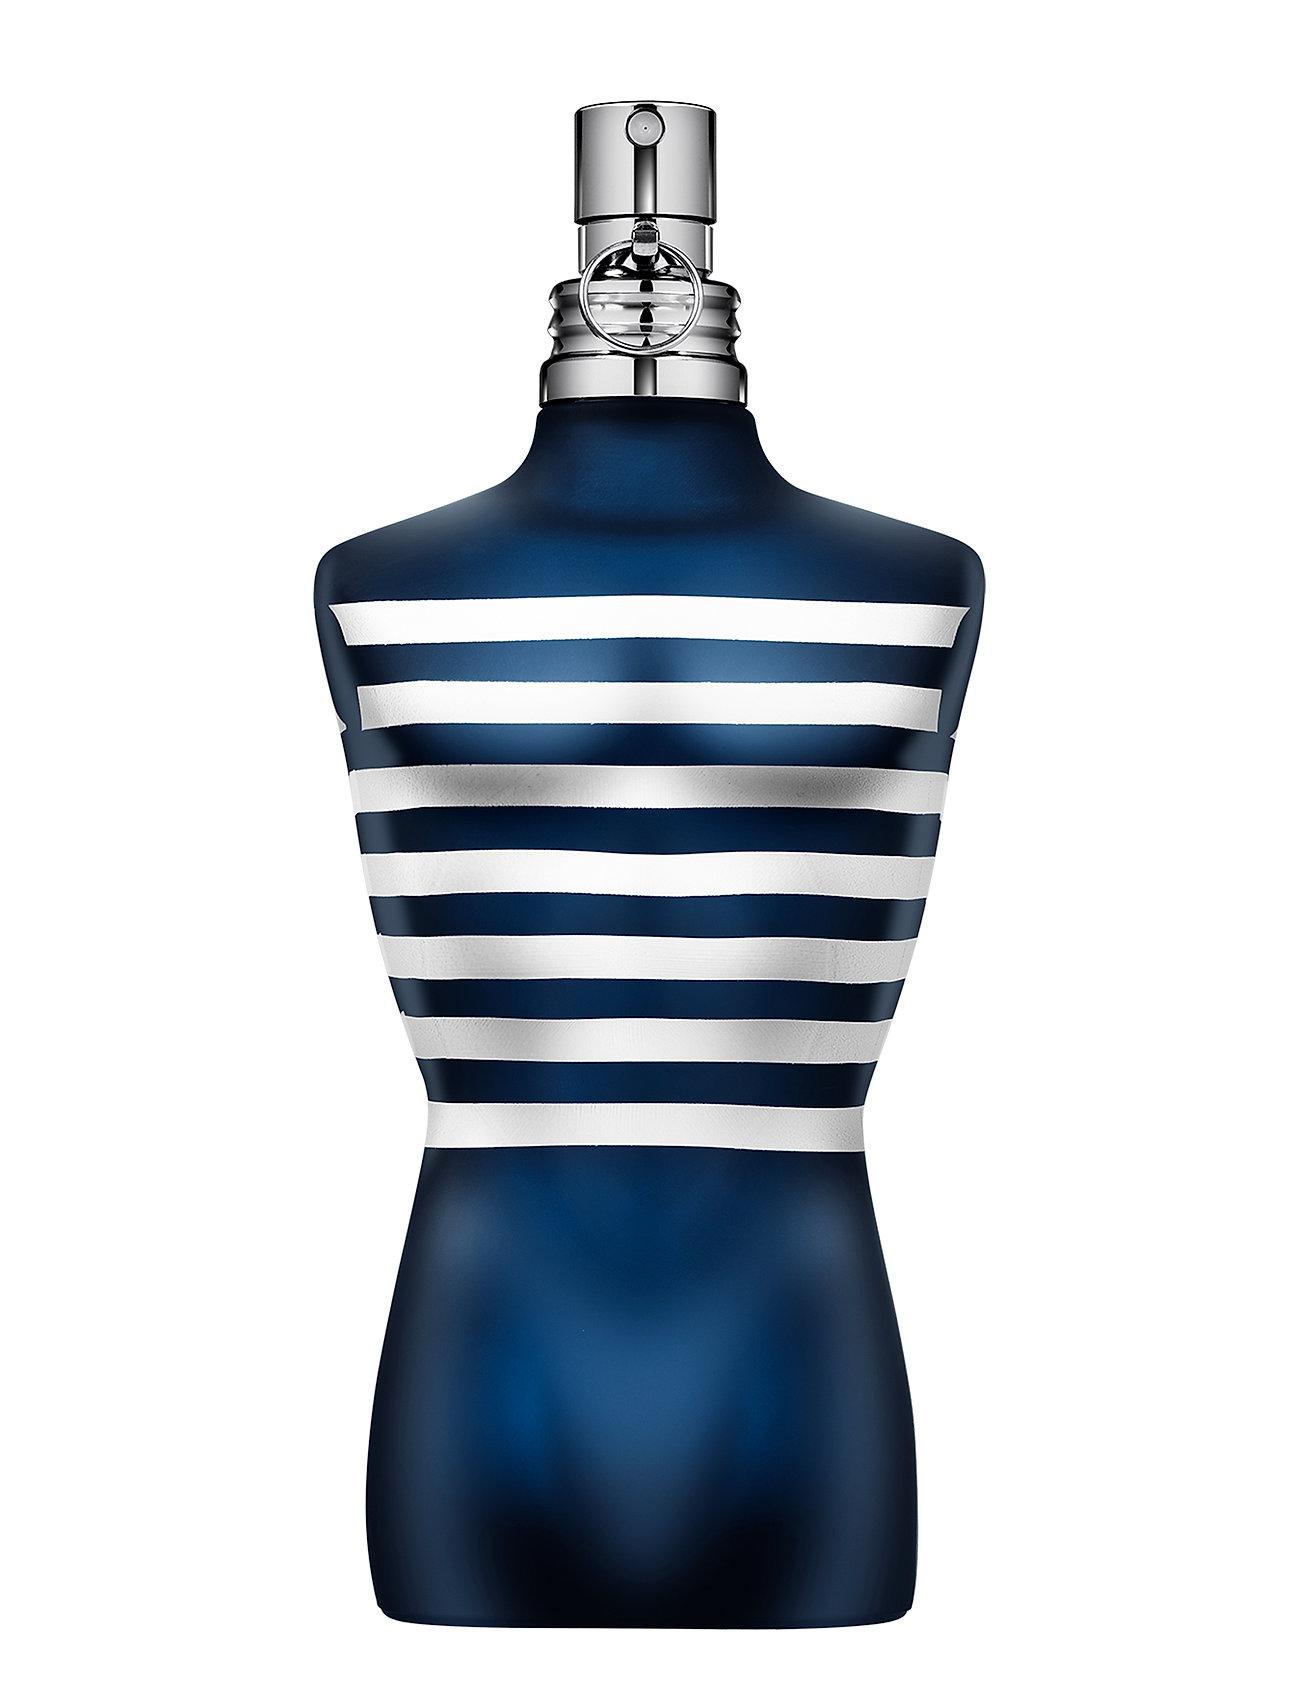 Jean Paul Gaultier LE MALE EAU DE TOILETTE - NO COLOR